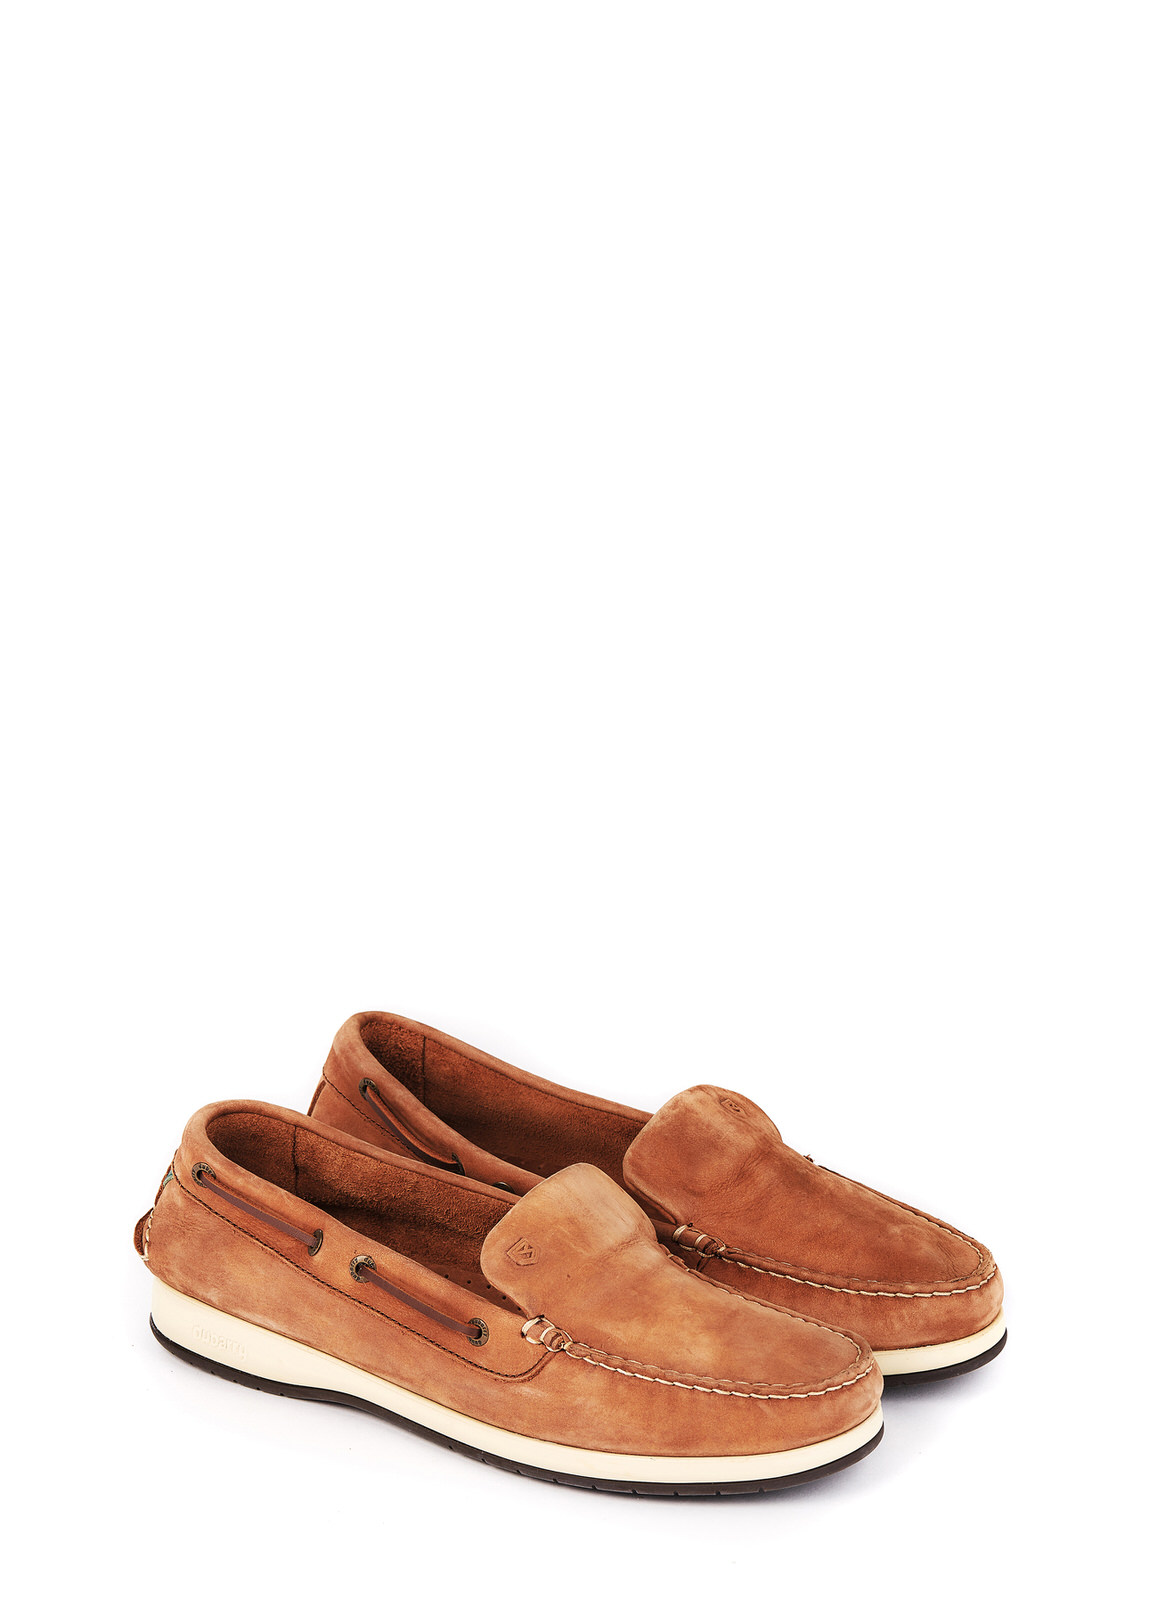 Dubarry_Marco XLT Deck Shoe - Chestnut_Image_1